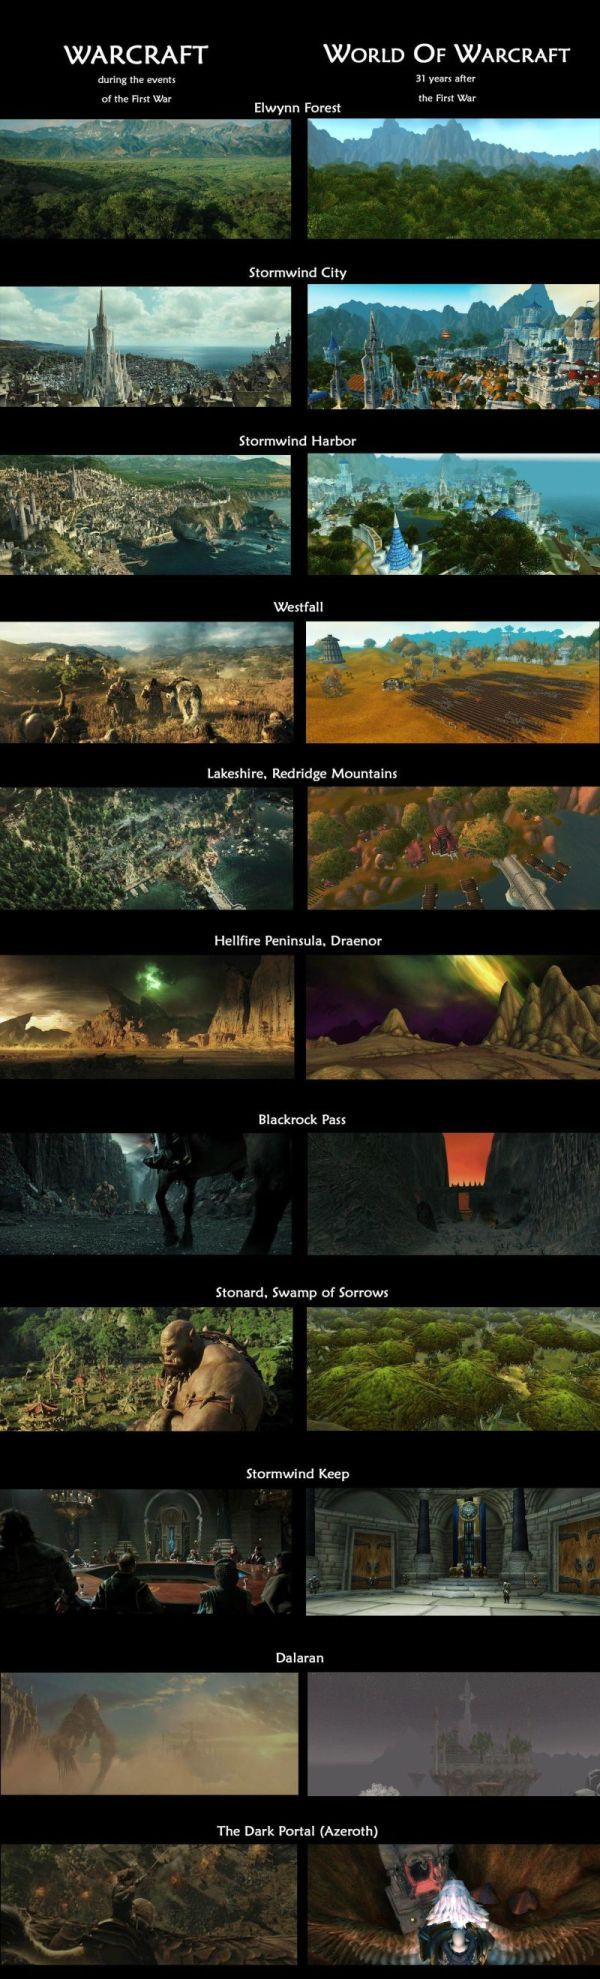 Aerial51zd took some screenshots from the World of Warcraft game and compared them to the same locations as observed in the latest Warcraft movie trailer.